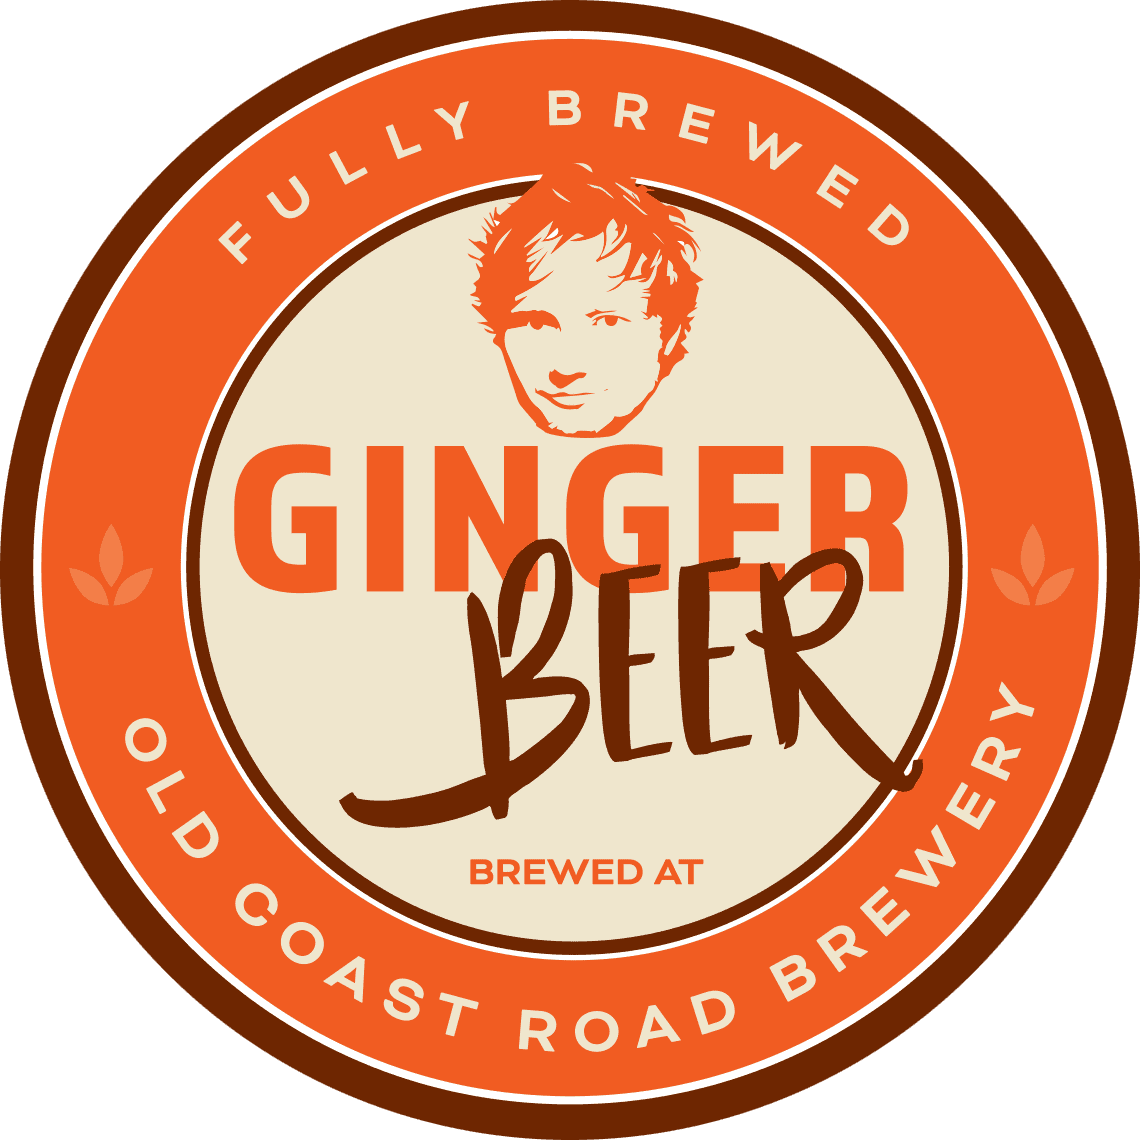 A properly brewed all-malt ginger beer. As a result, it's fresher and with more body and complexity than the commercial brands.